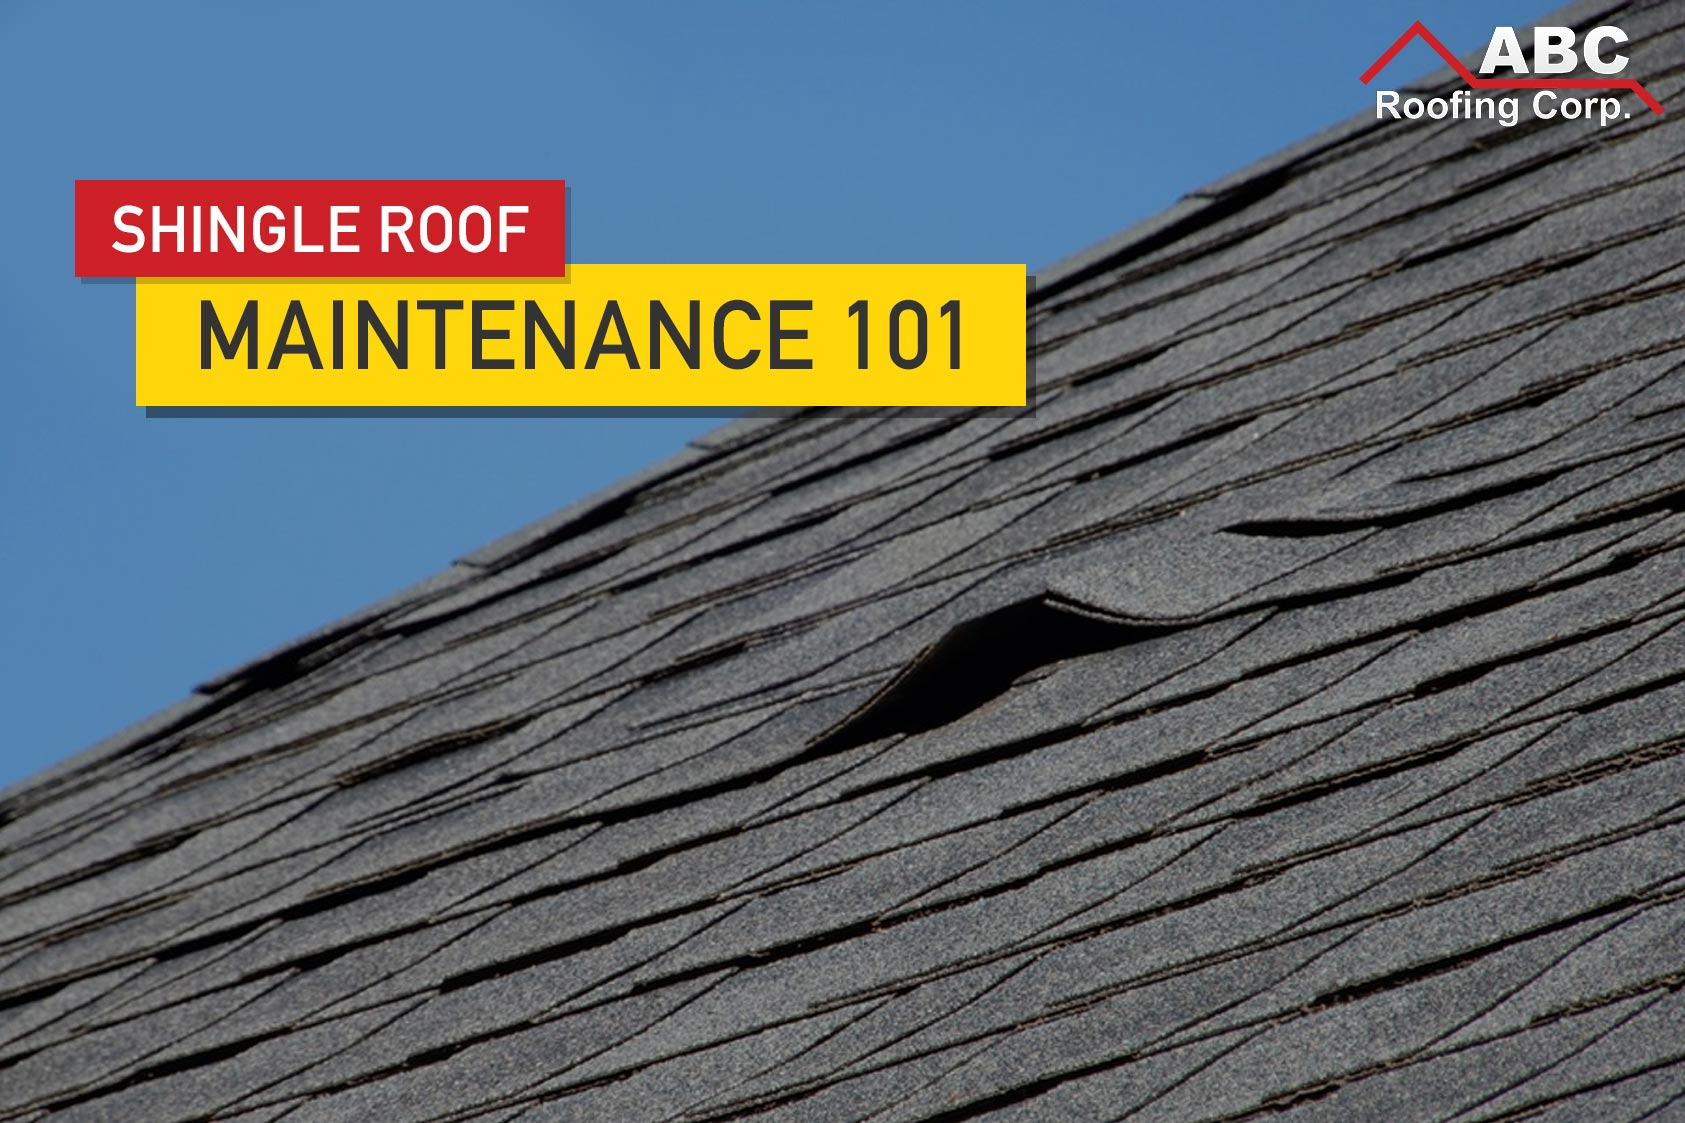 Shingle Roof Maintenance For Your South Florida Home